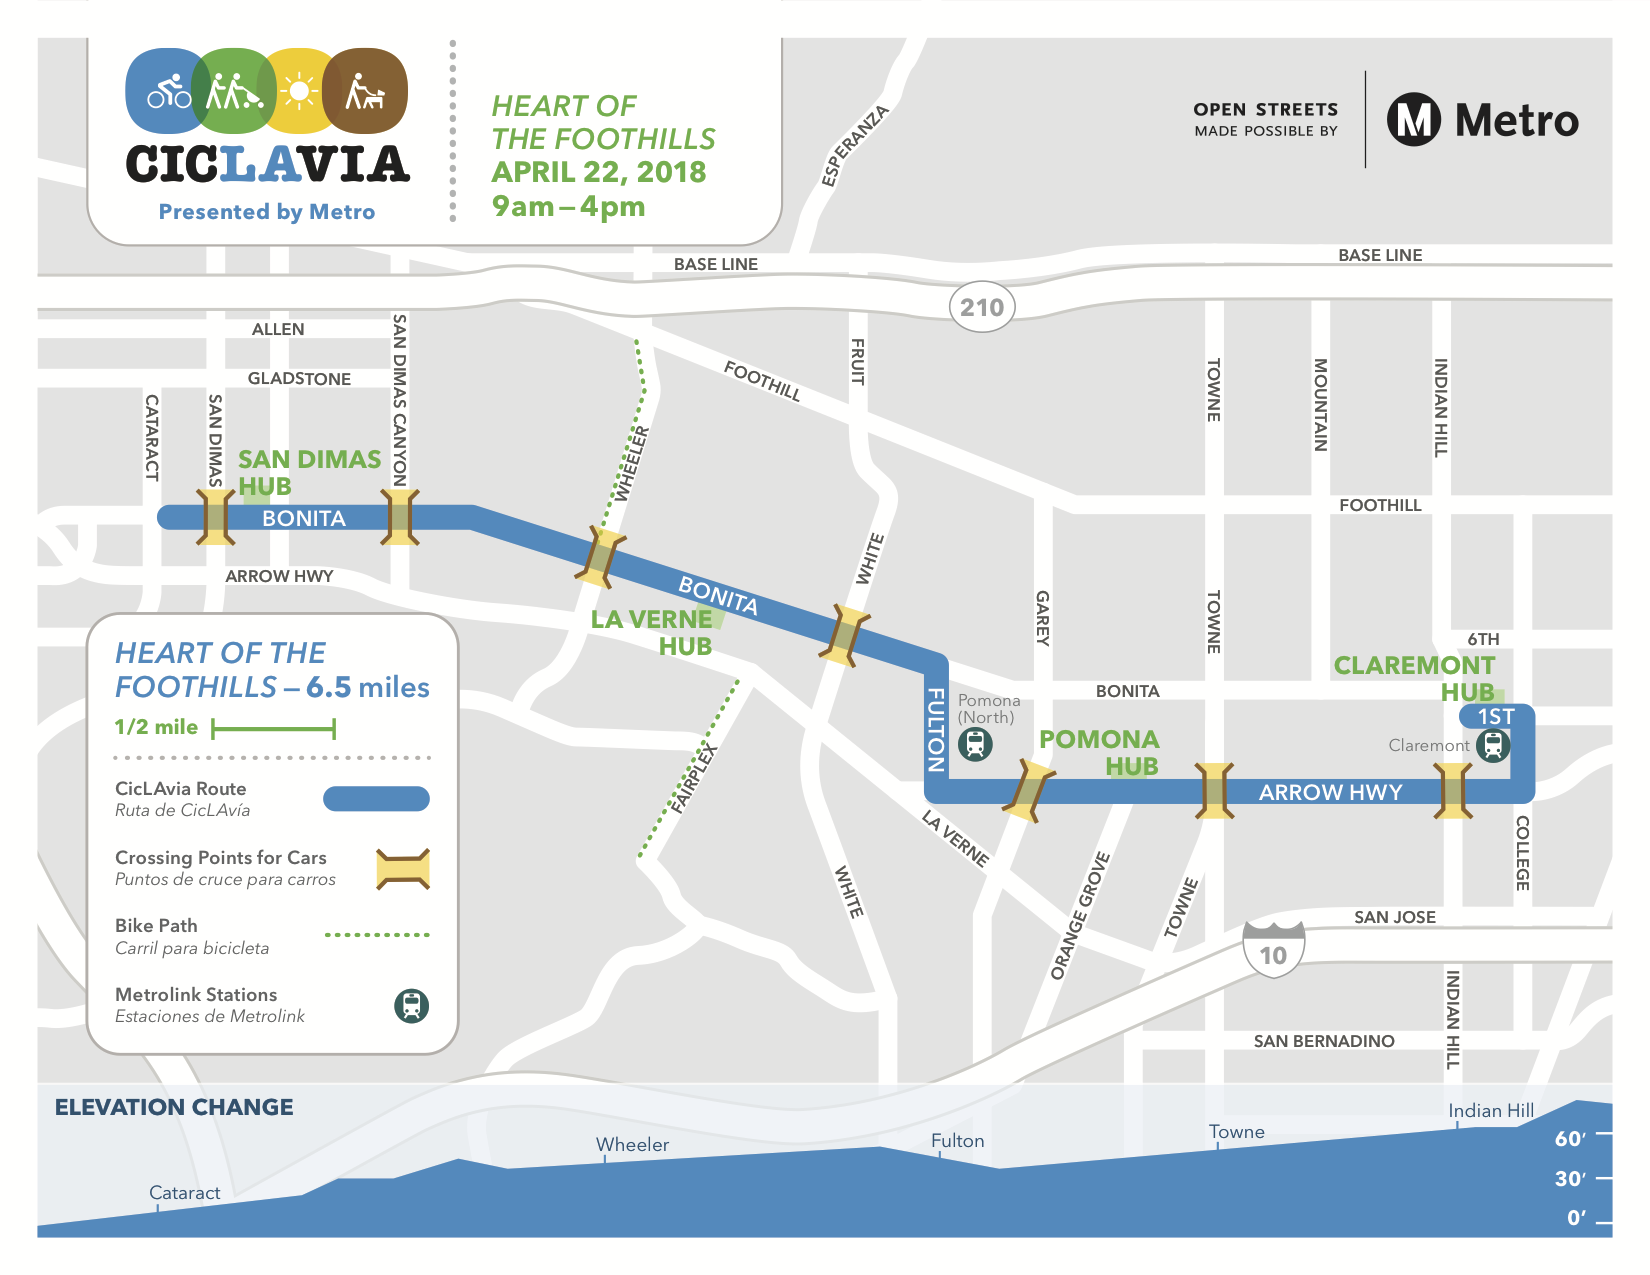 ciclavia_foothill_map_3